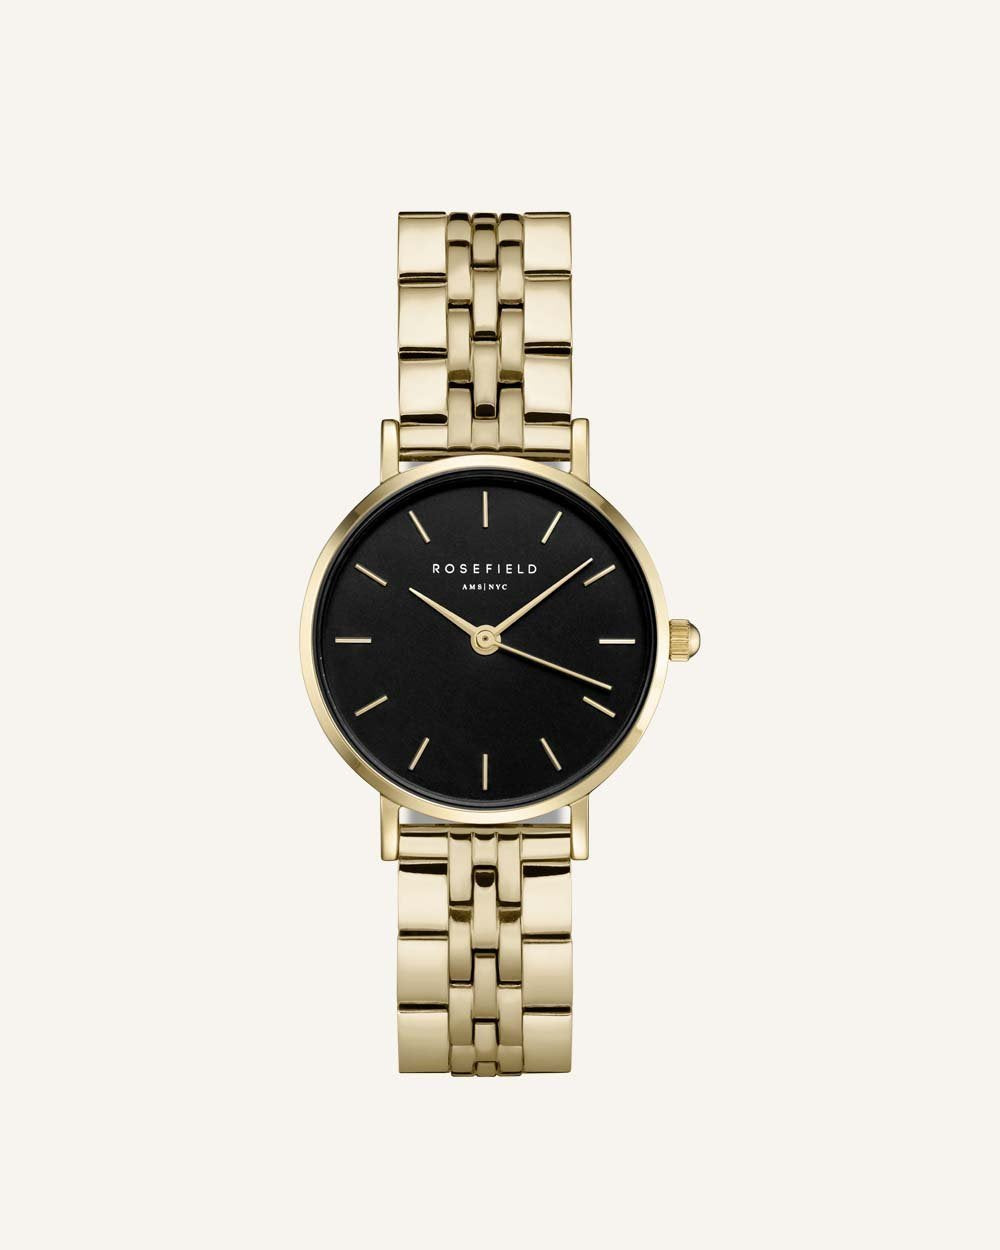 Rosefield The Small Edit gold with black dial